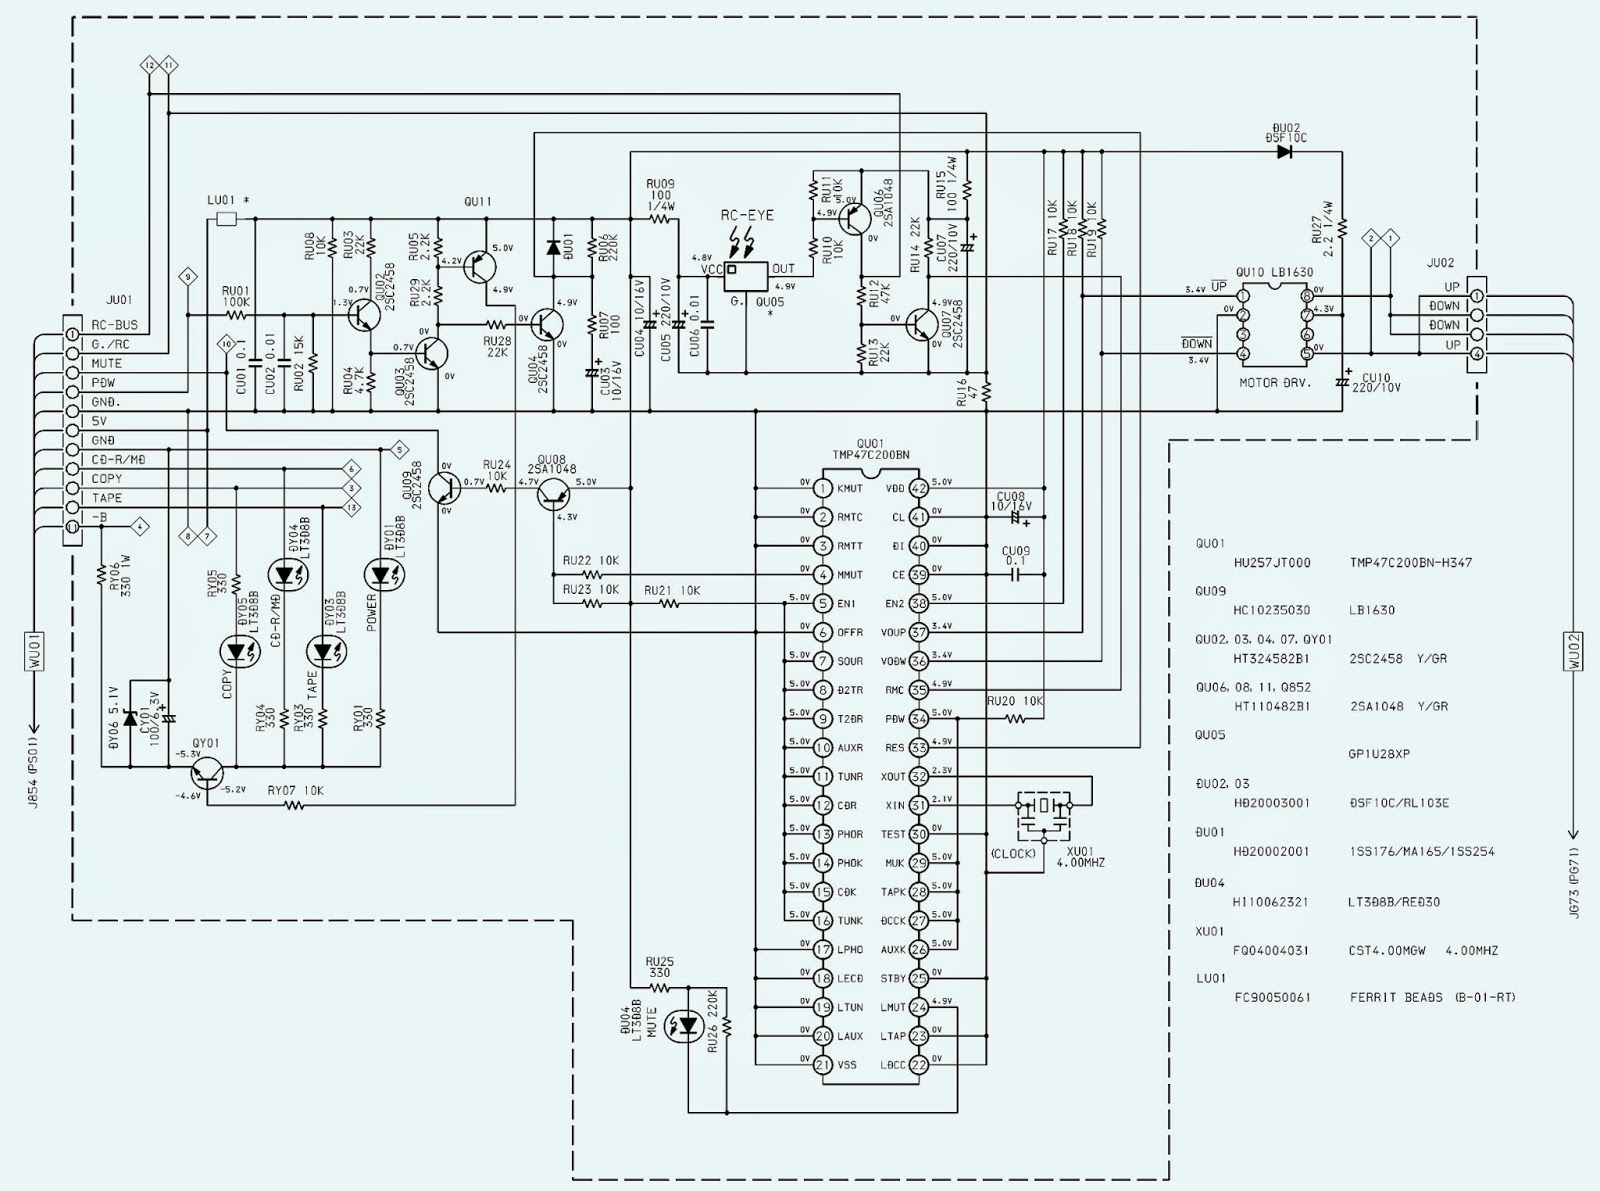 Wiring      diagram    Info  MARANTZ PM6010 OSE SCHEMATIC Wiring    diagram    Schematic Integrated Amplifier